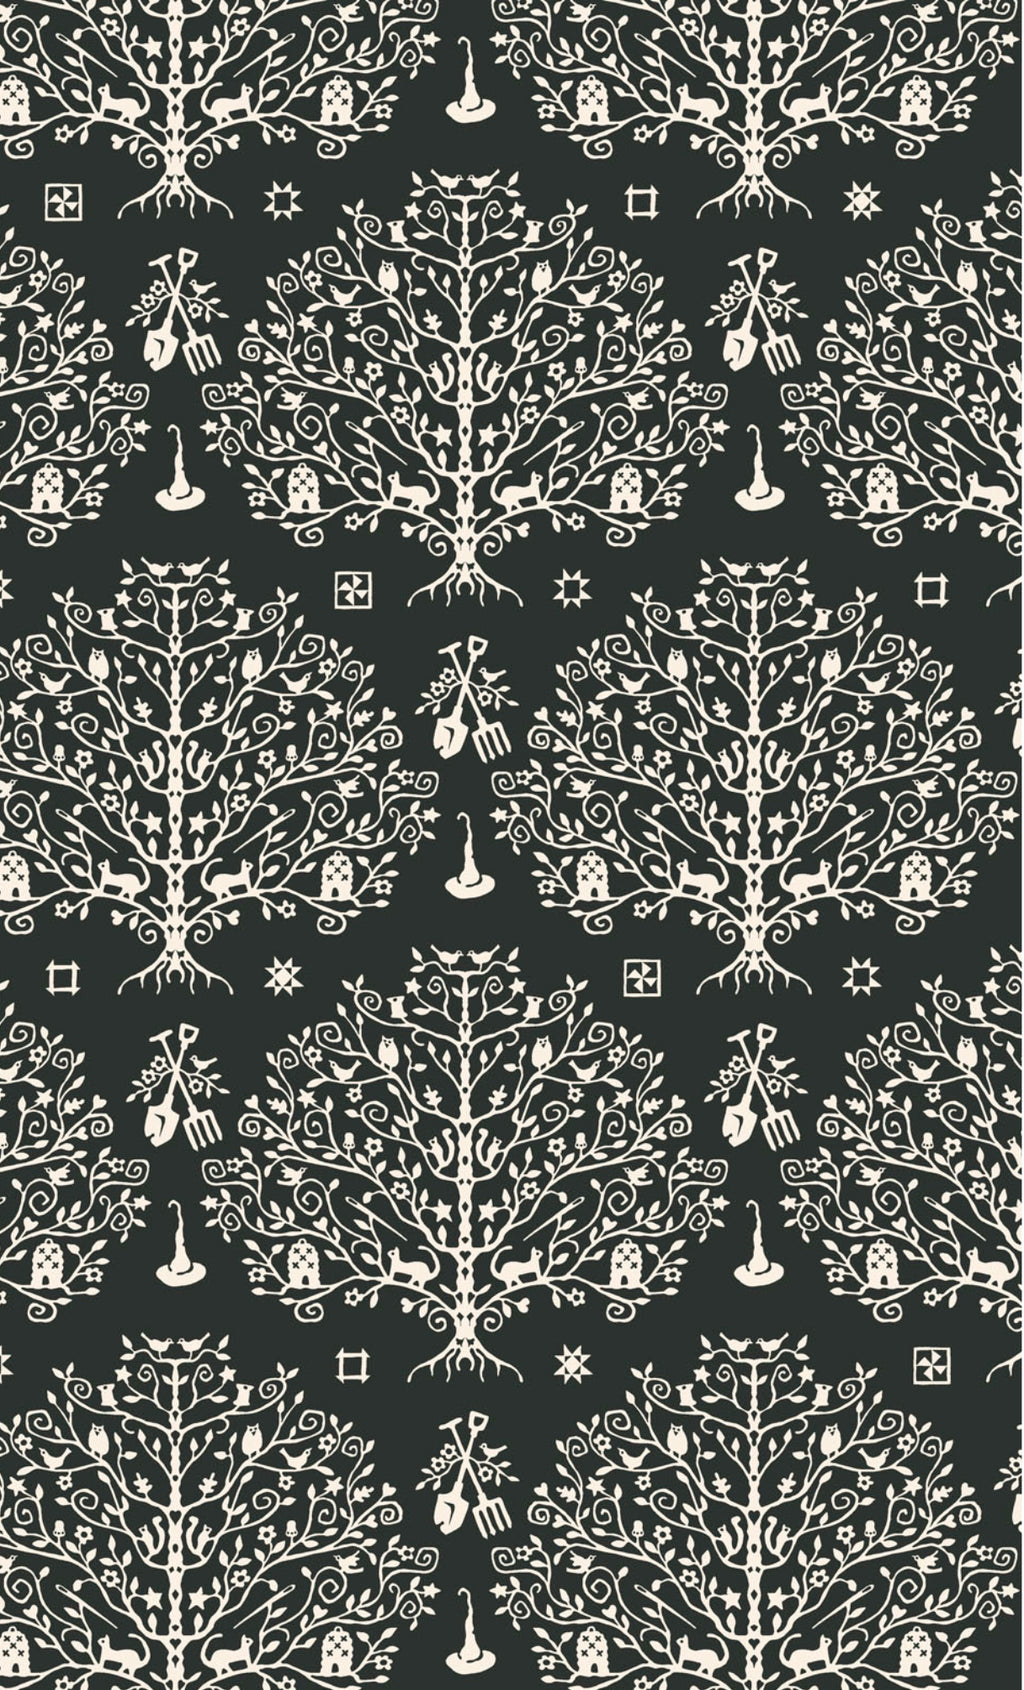 PAPER CUT TREE - BLACK from the Spellcasters Garden Fabric Line, Toad Hollow Fabrics